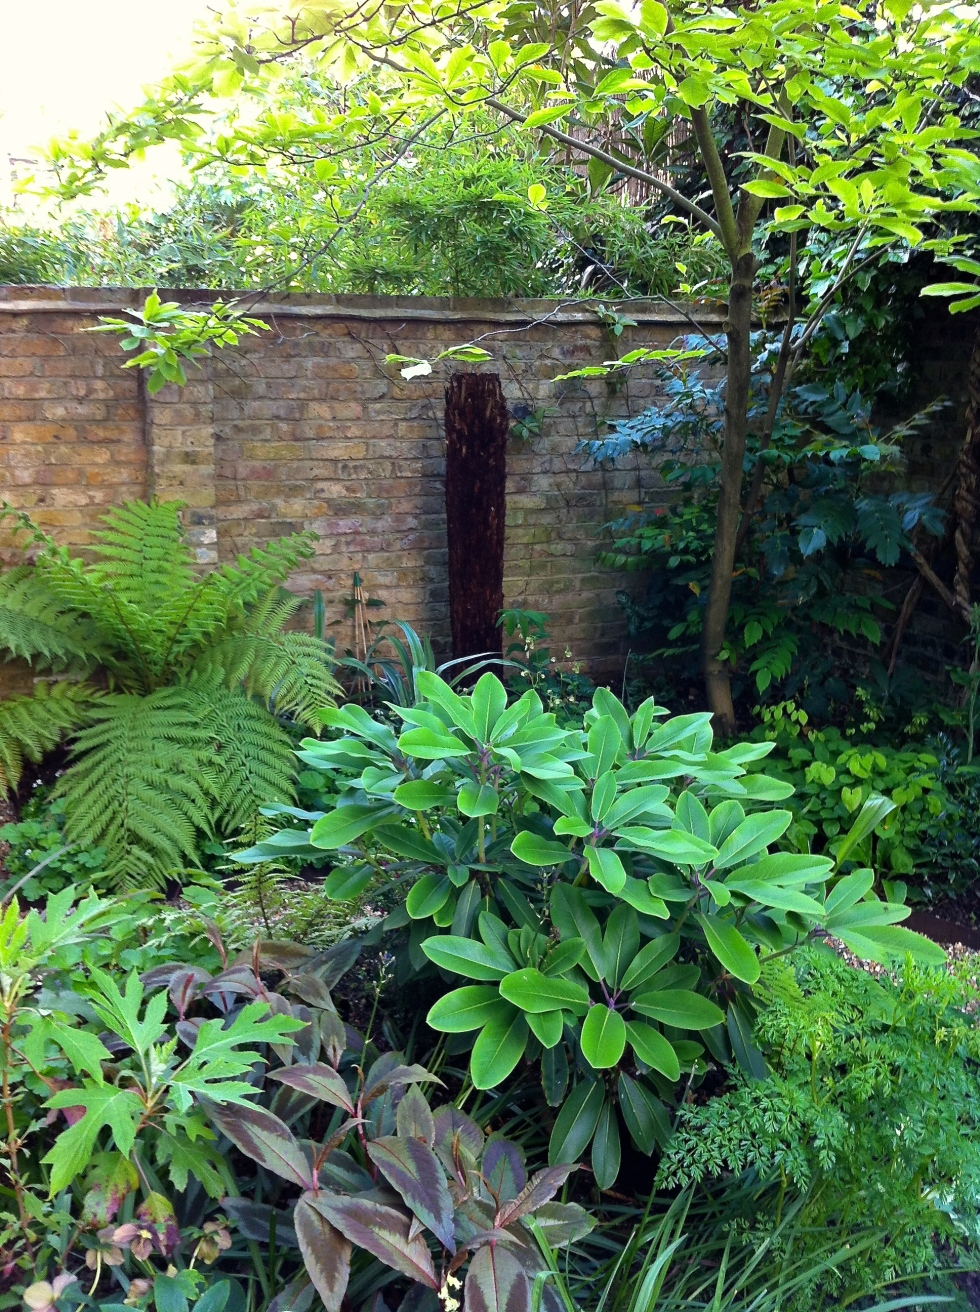 David and Goliath, tree ferns, London, May 2014